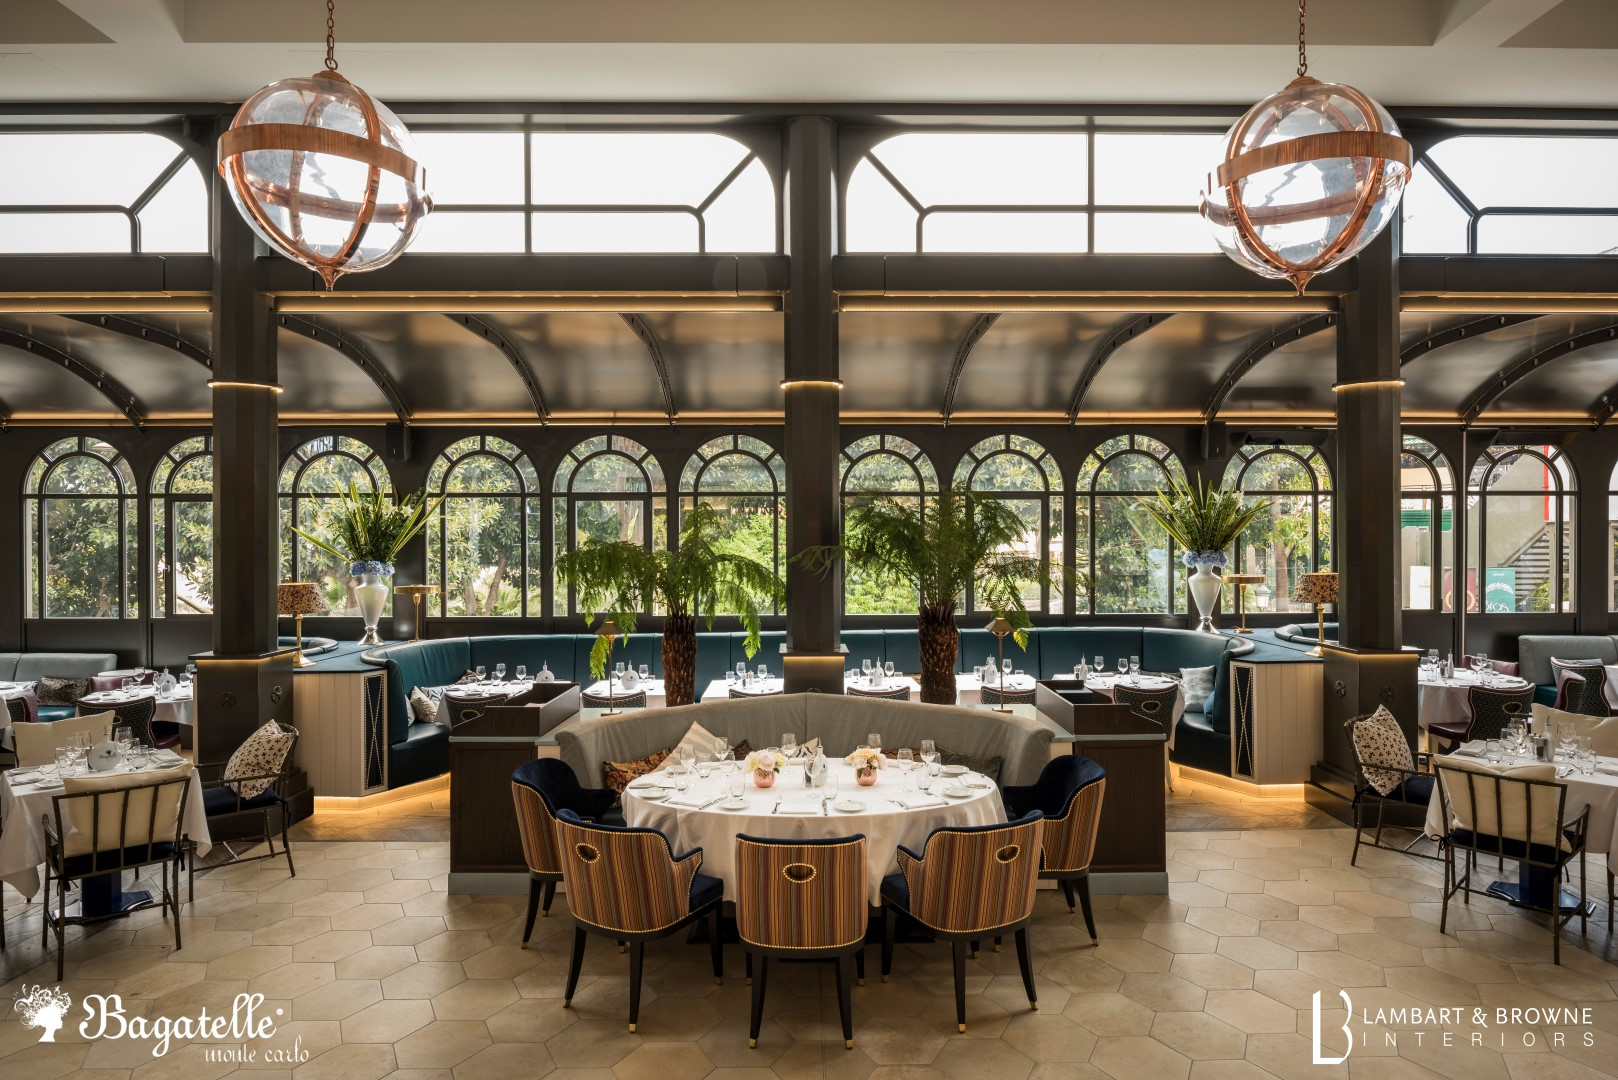 Inside Look At Bagatelle Monte Carlo One Of The Best